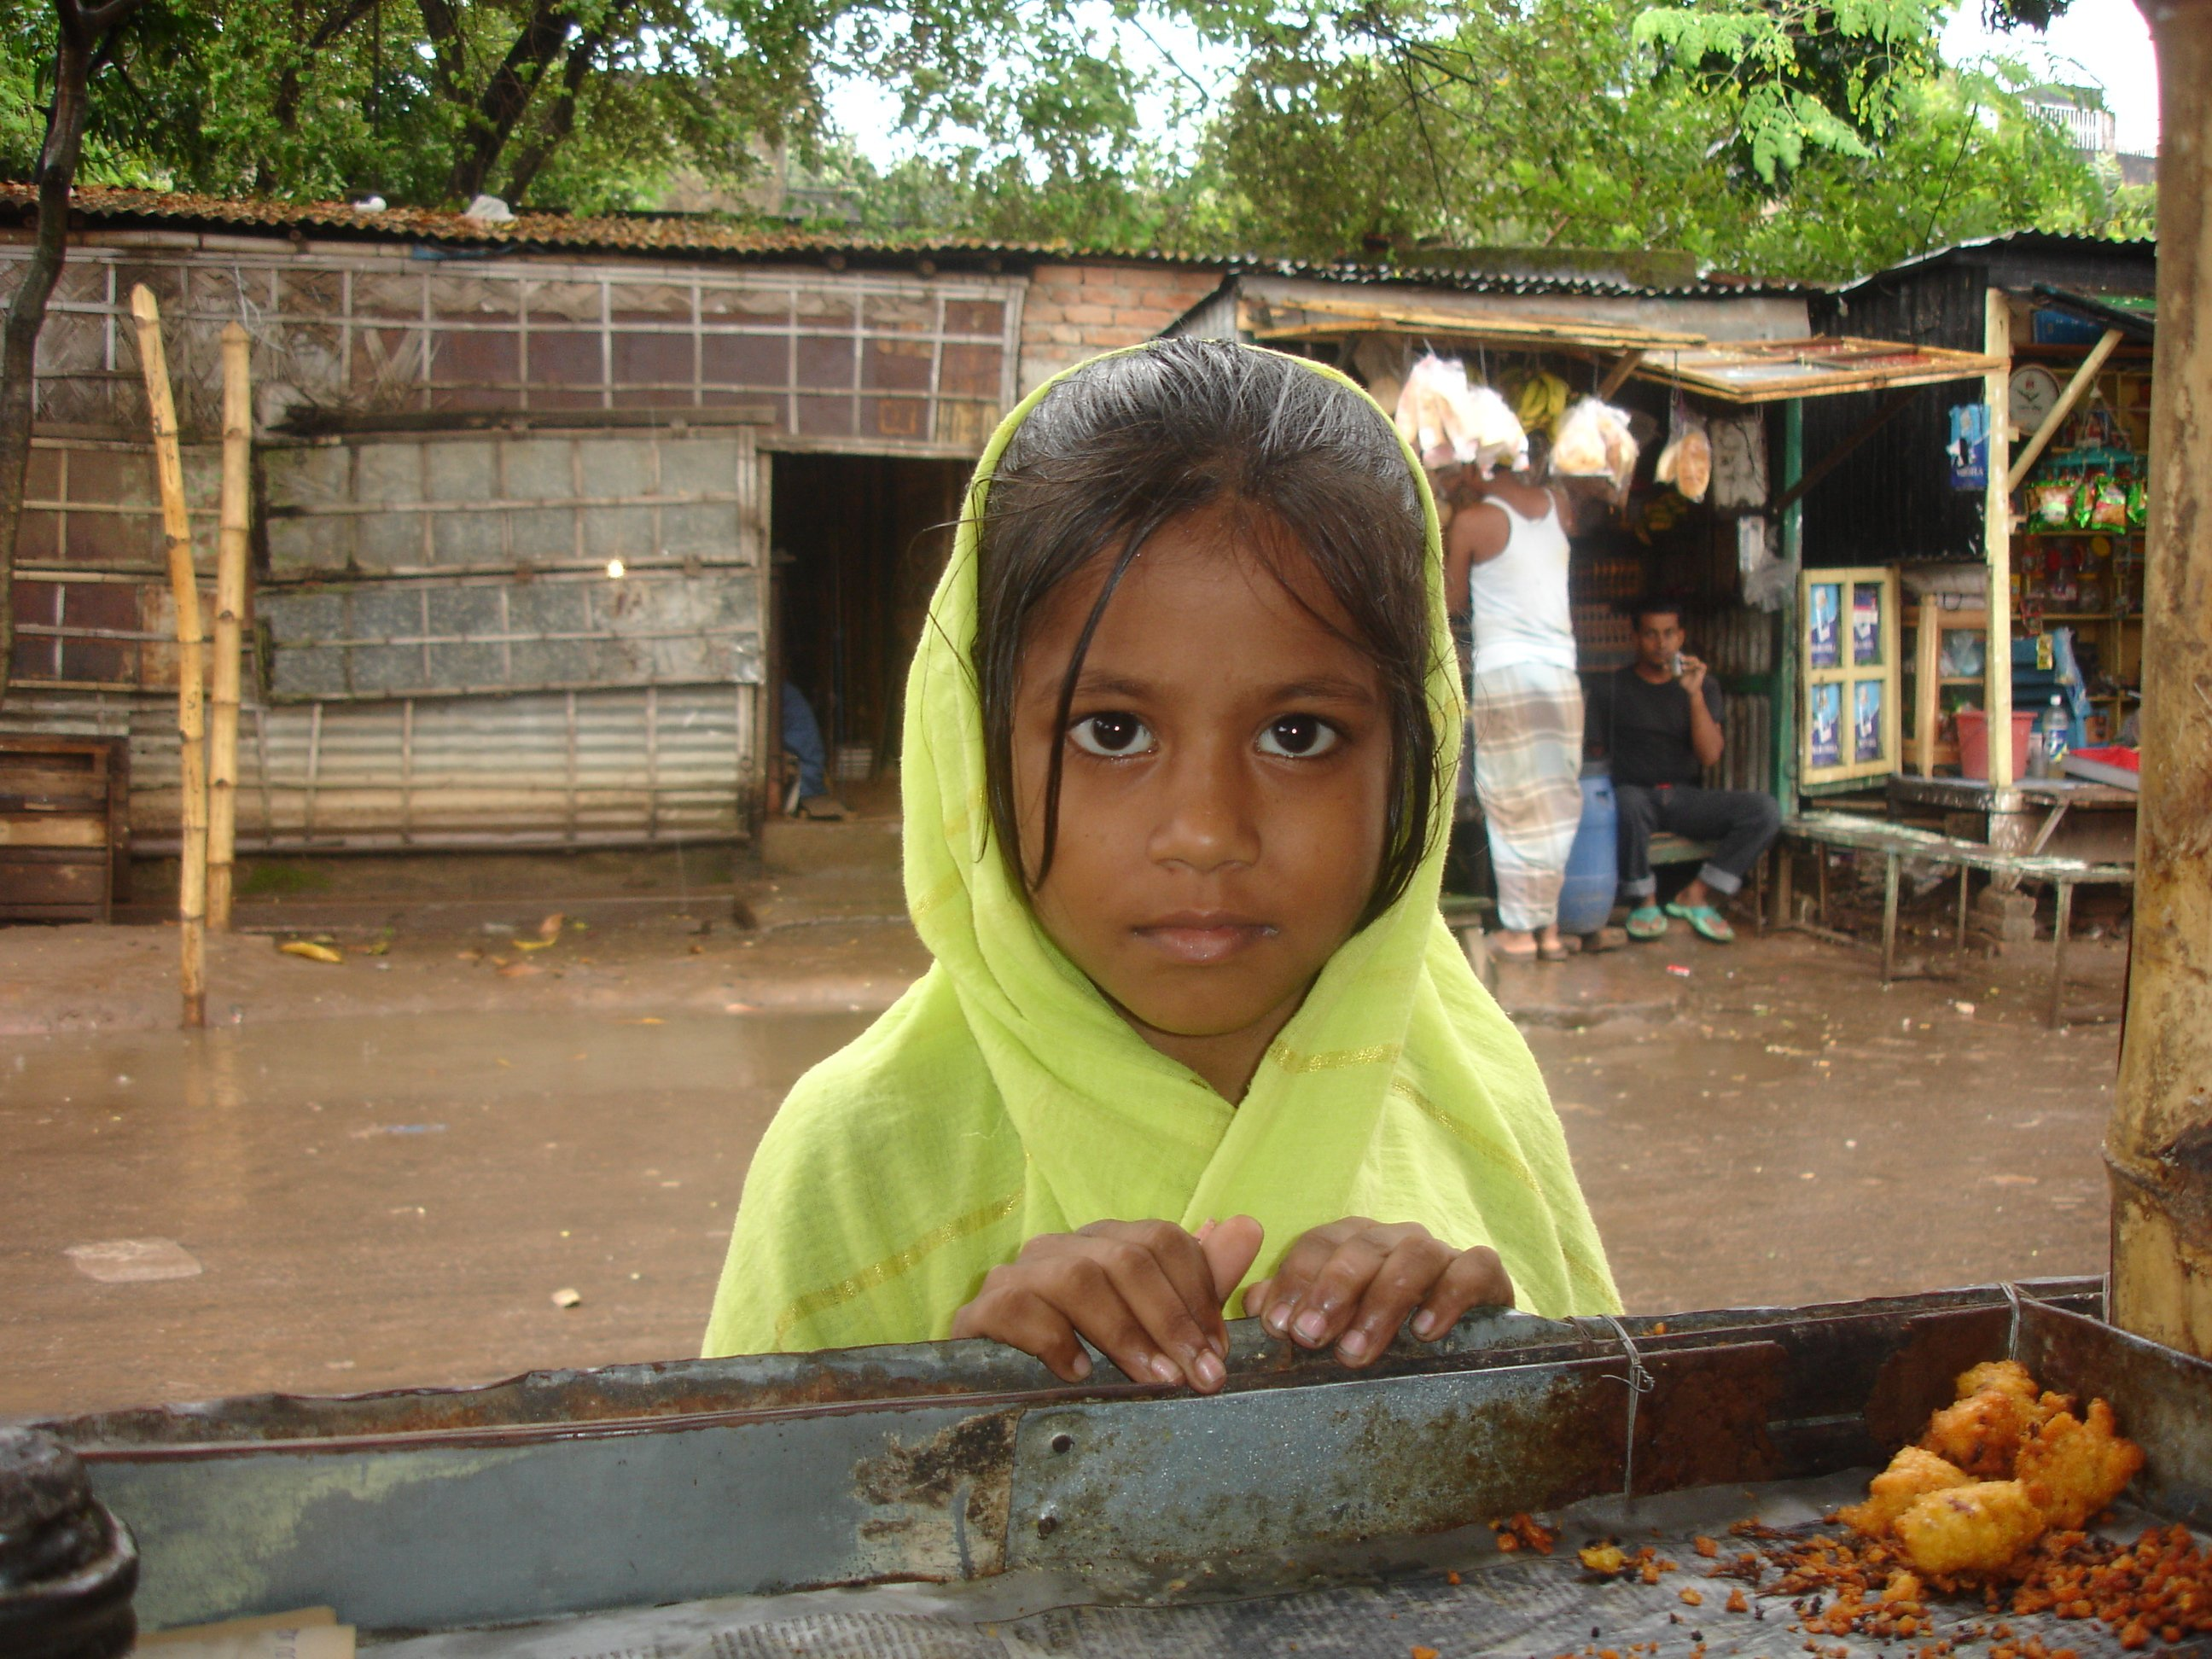 The New Humanitarian | More data needed on abandoned children